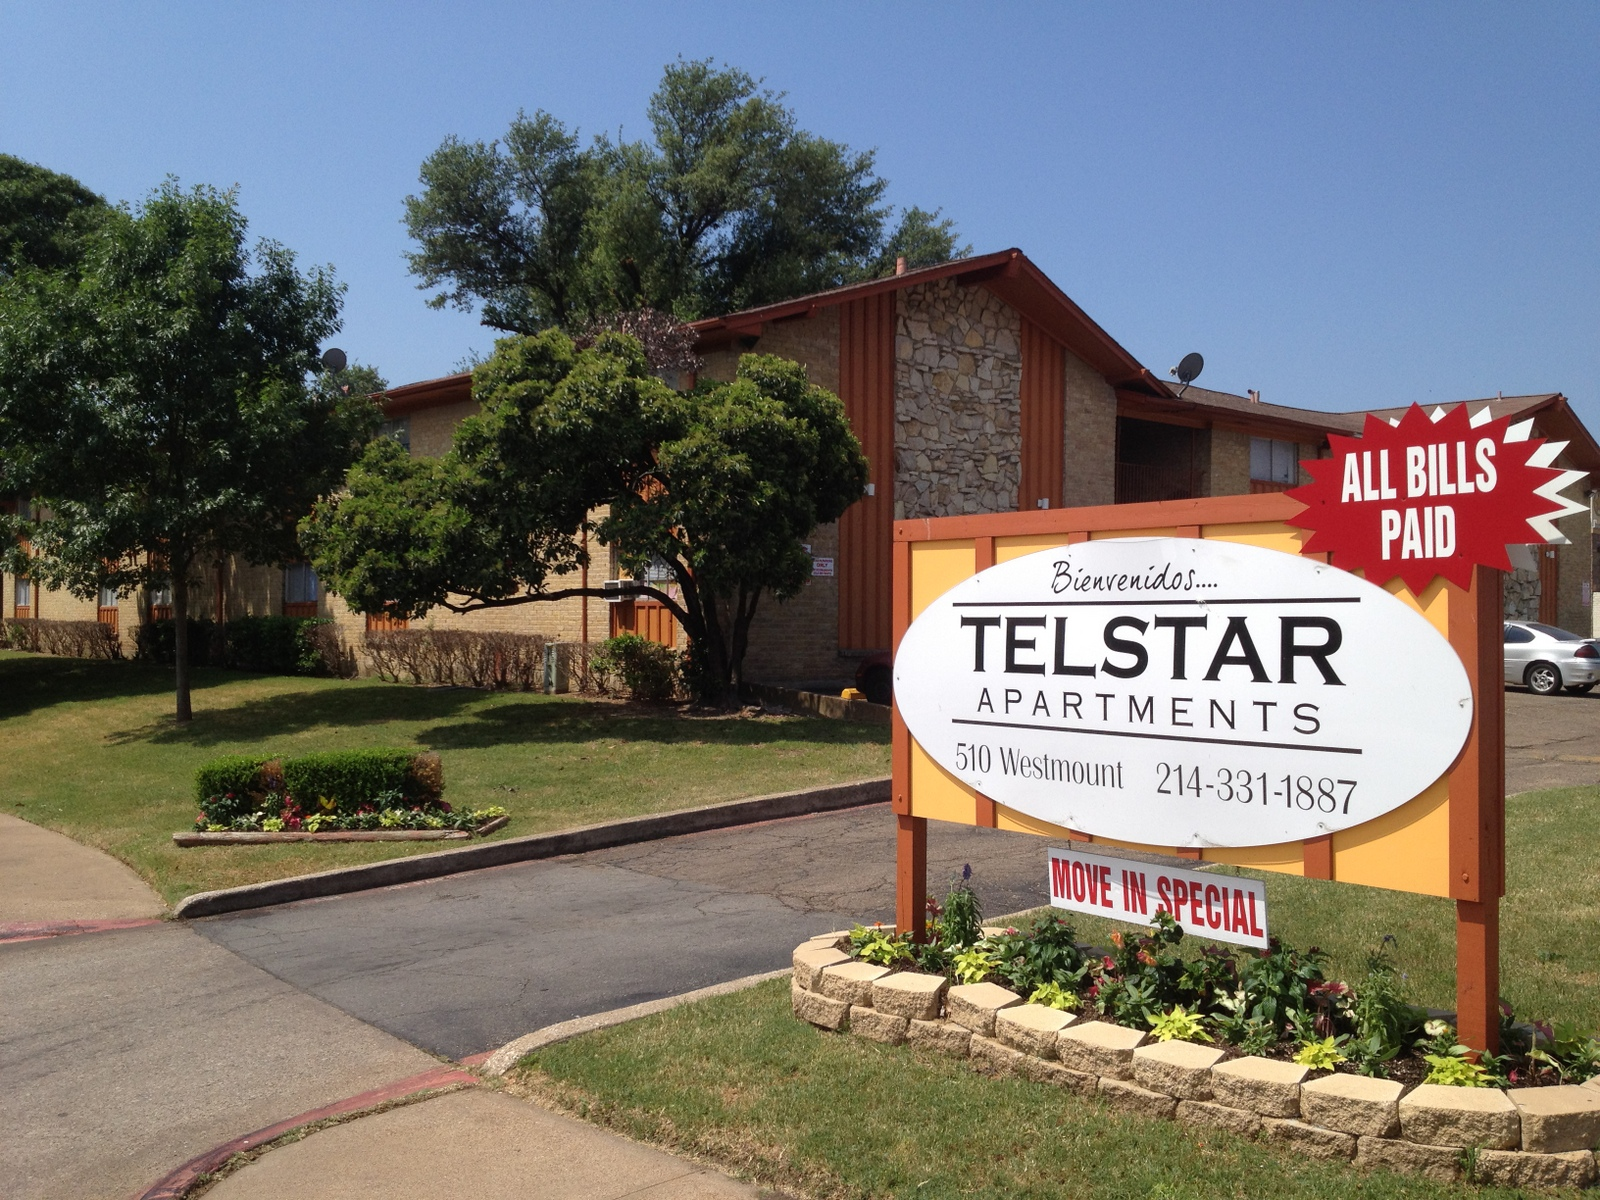 Telstar Apartments